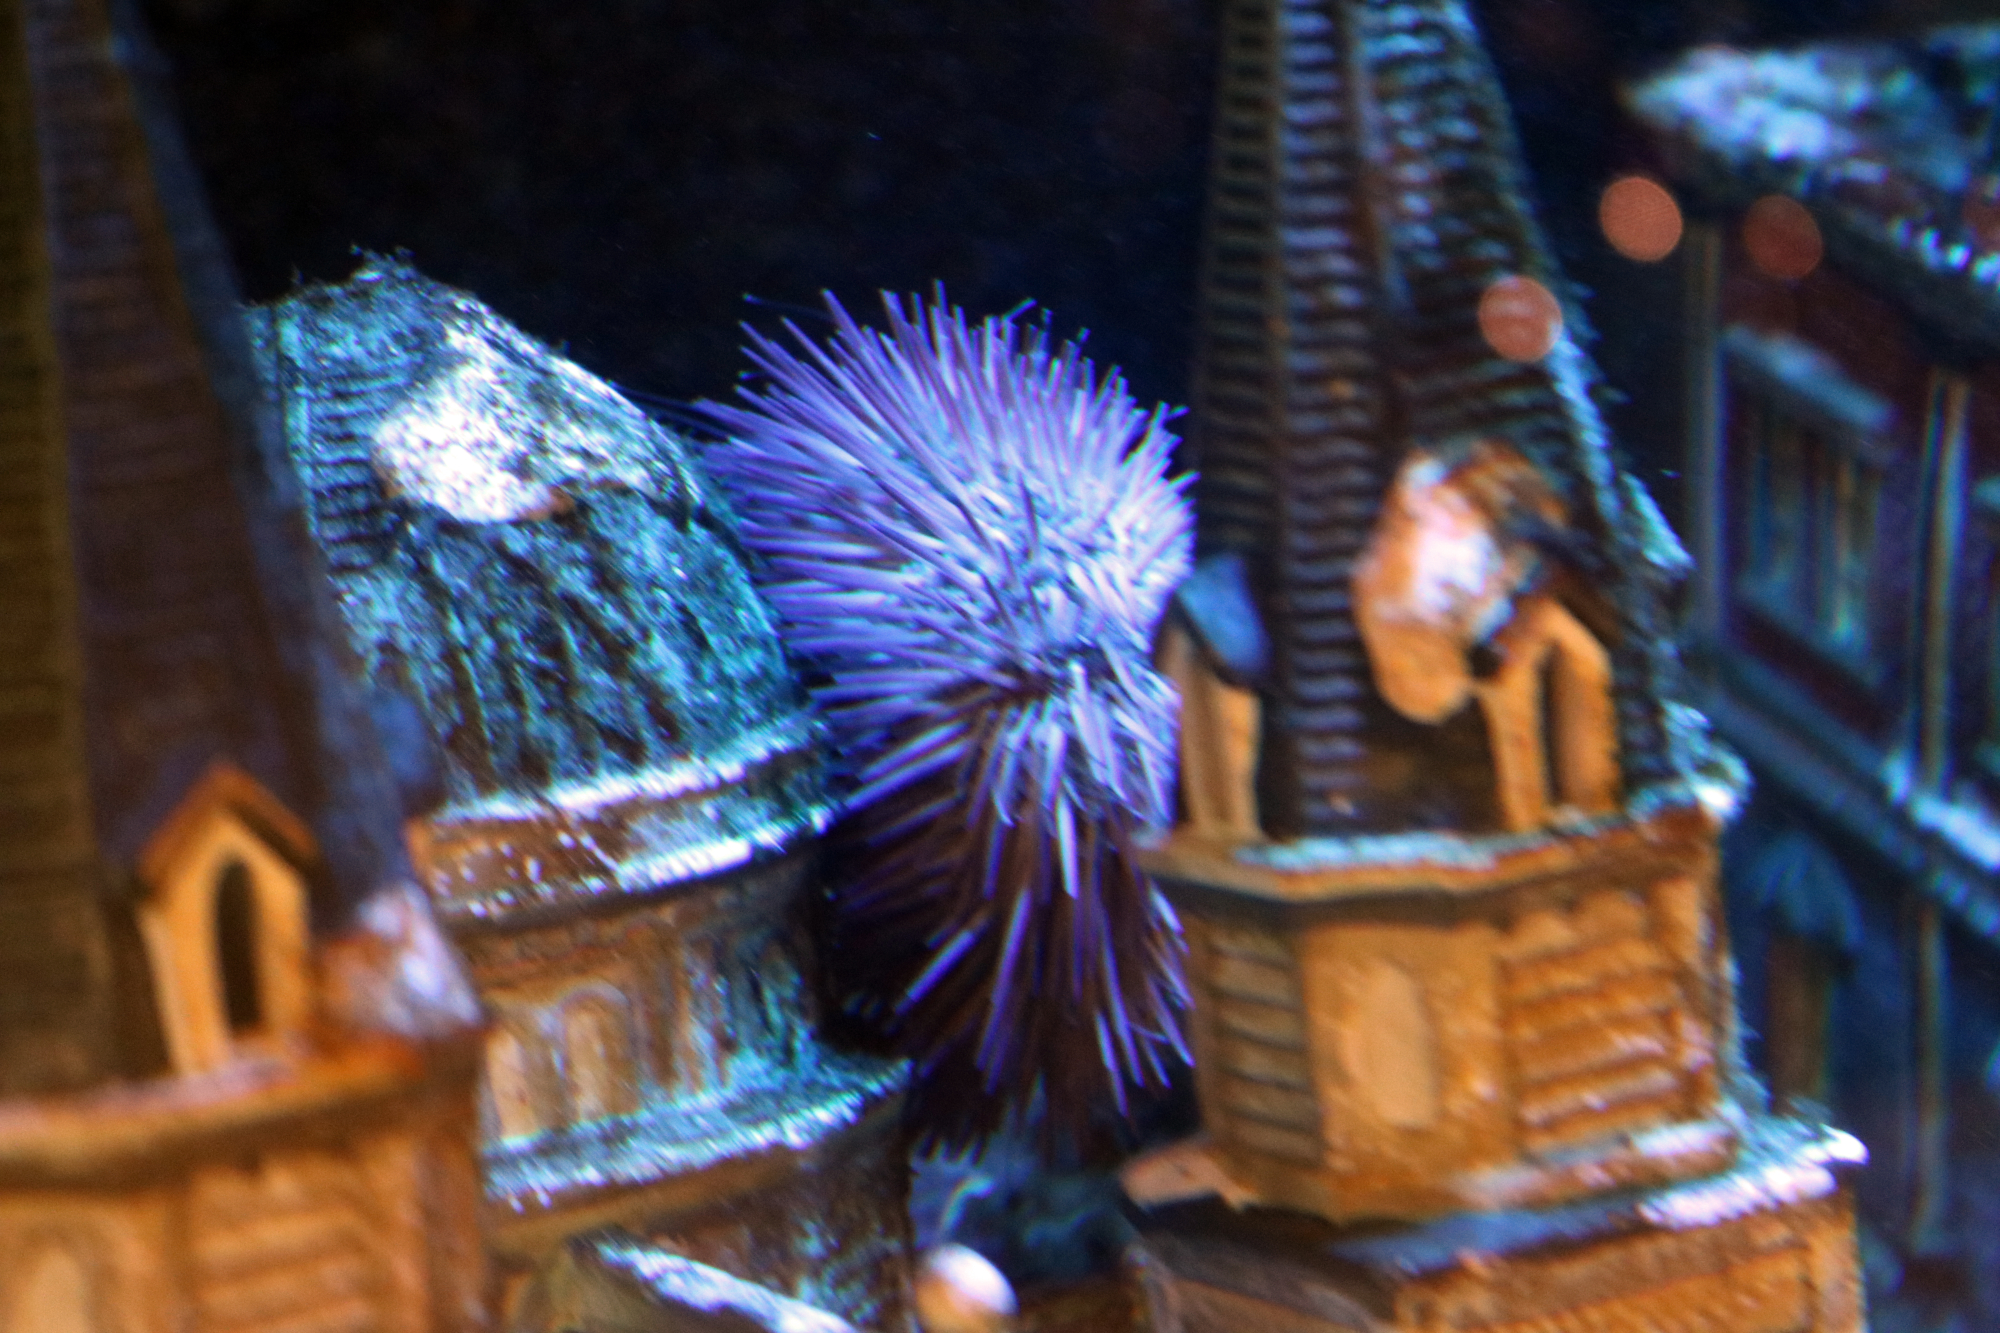 sea urchin making himself at home in our salt water tank